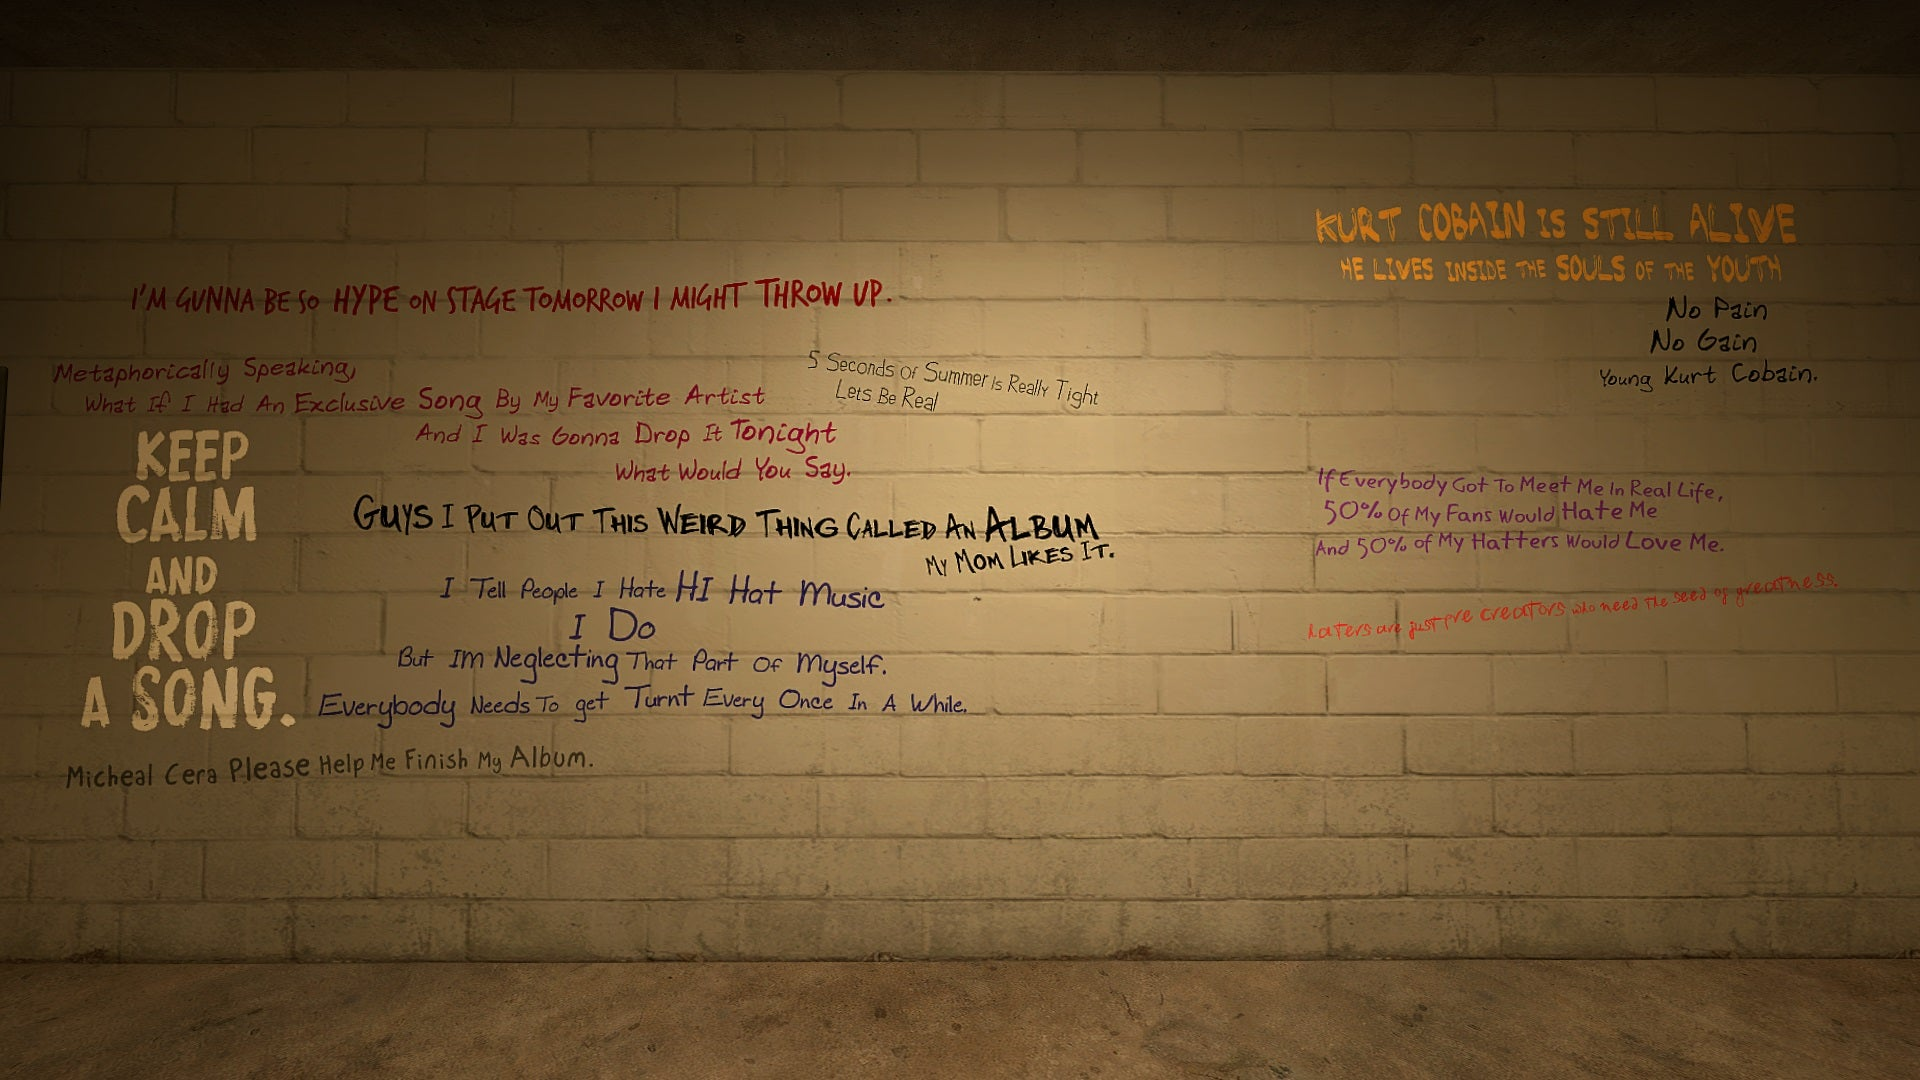 There's A Left 4 Dead 2 Mod That Transforms Graffiti Into Jaden